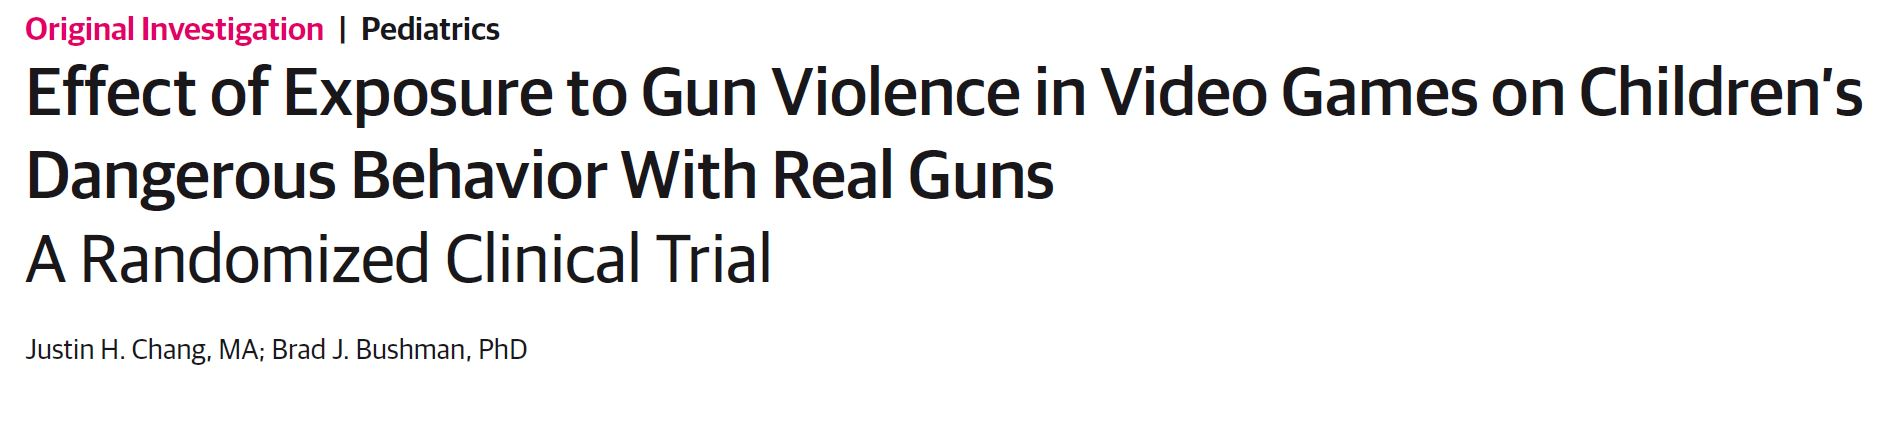 Effect of Exposure to Gun Violence in Video Games on Children's Dangerous Behavior With Real Guns